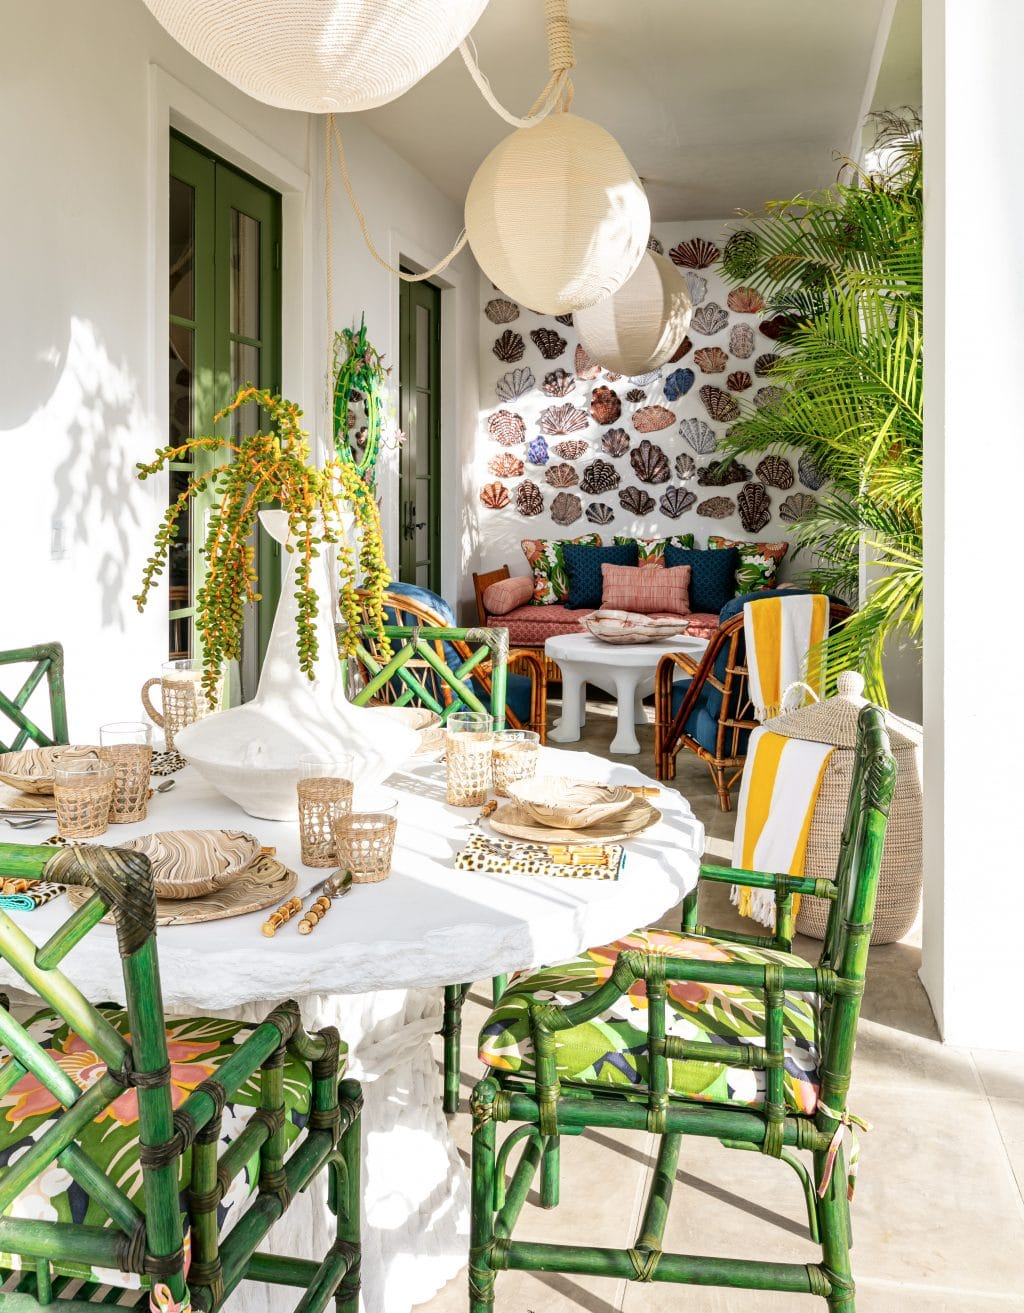 kips bay palm beach decorator showhouse 2020, 25 Inspirational Tropical Design Ideas From Kips Bay Palm Beach Decorator Showhouse | 2020 Interior Design Ideas